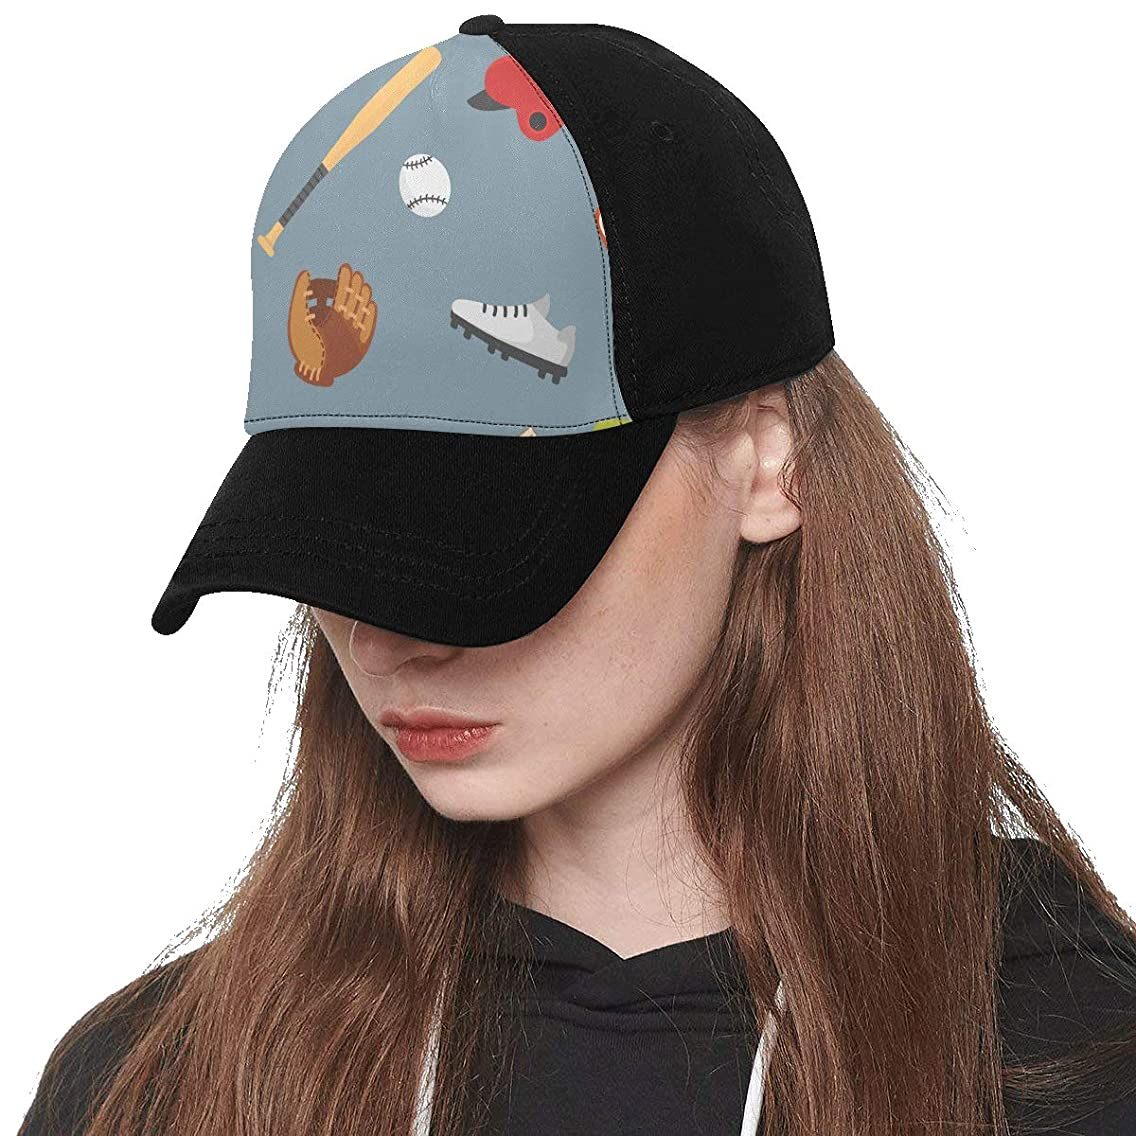 Front Panel Custom Baseball Player Cute Hand Drawn Sports Printing Baseball Hat Adjustable Size Curved Dad Cap Suit for Hip-hop Sports Summer Beach Outdoor Activities Unisex